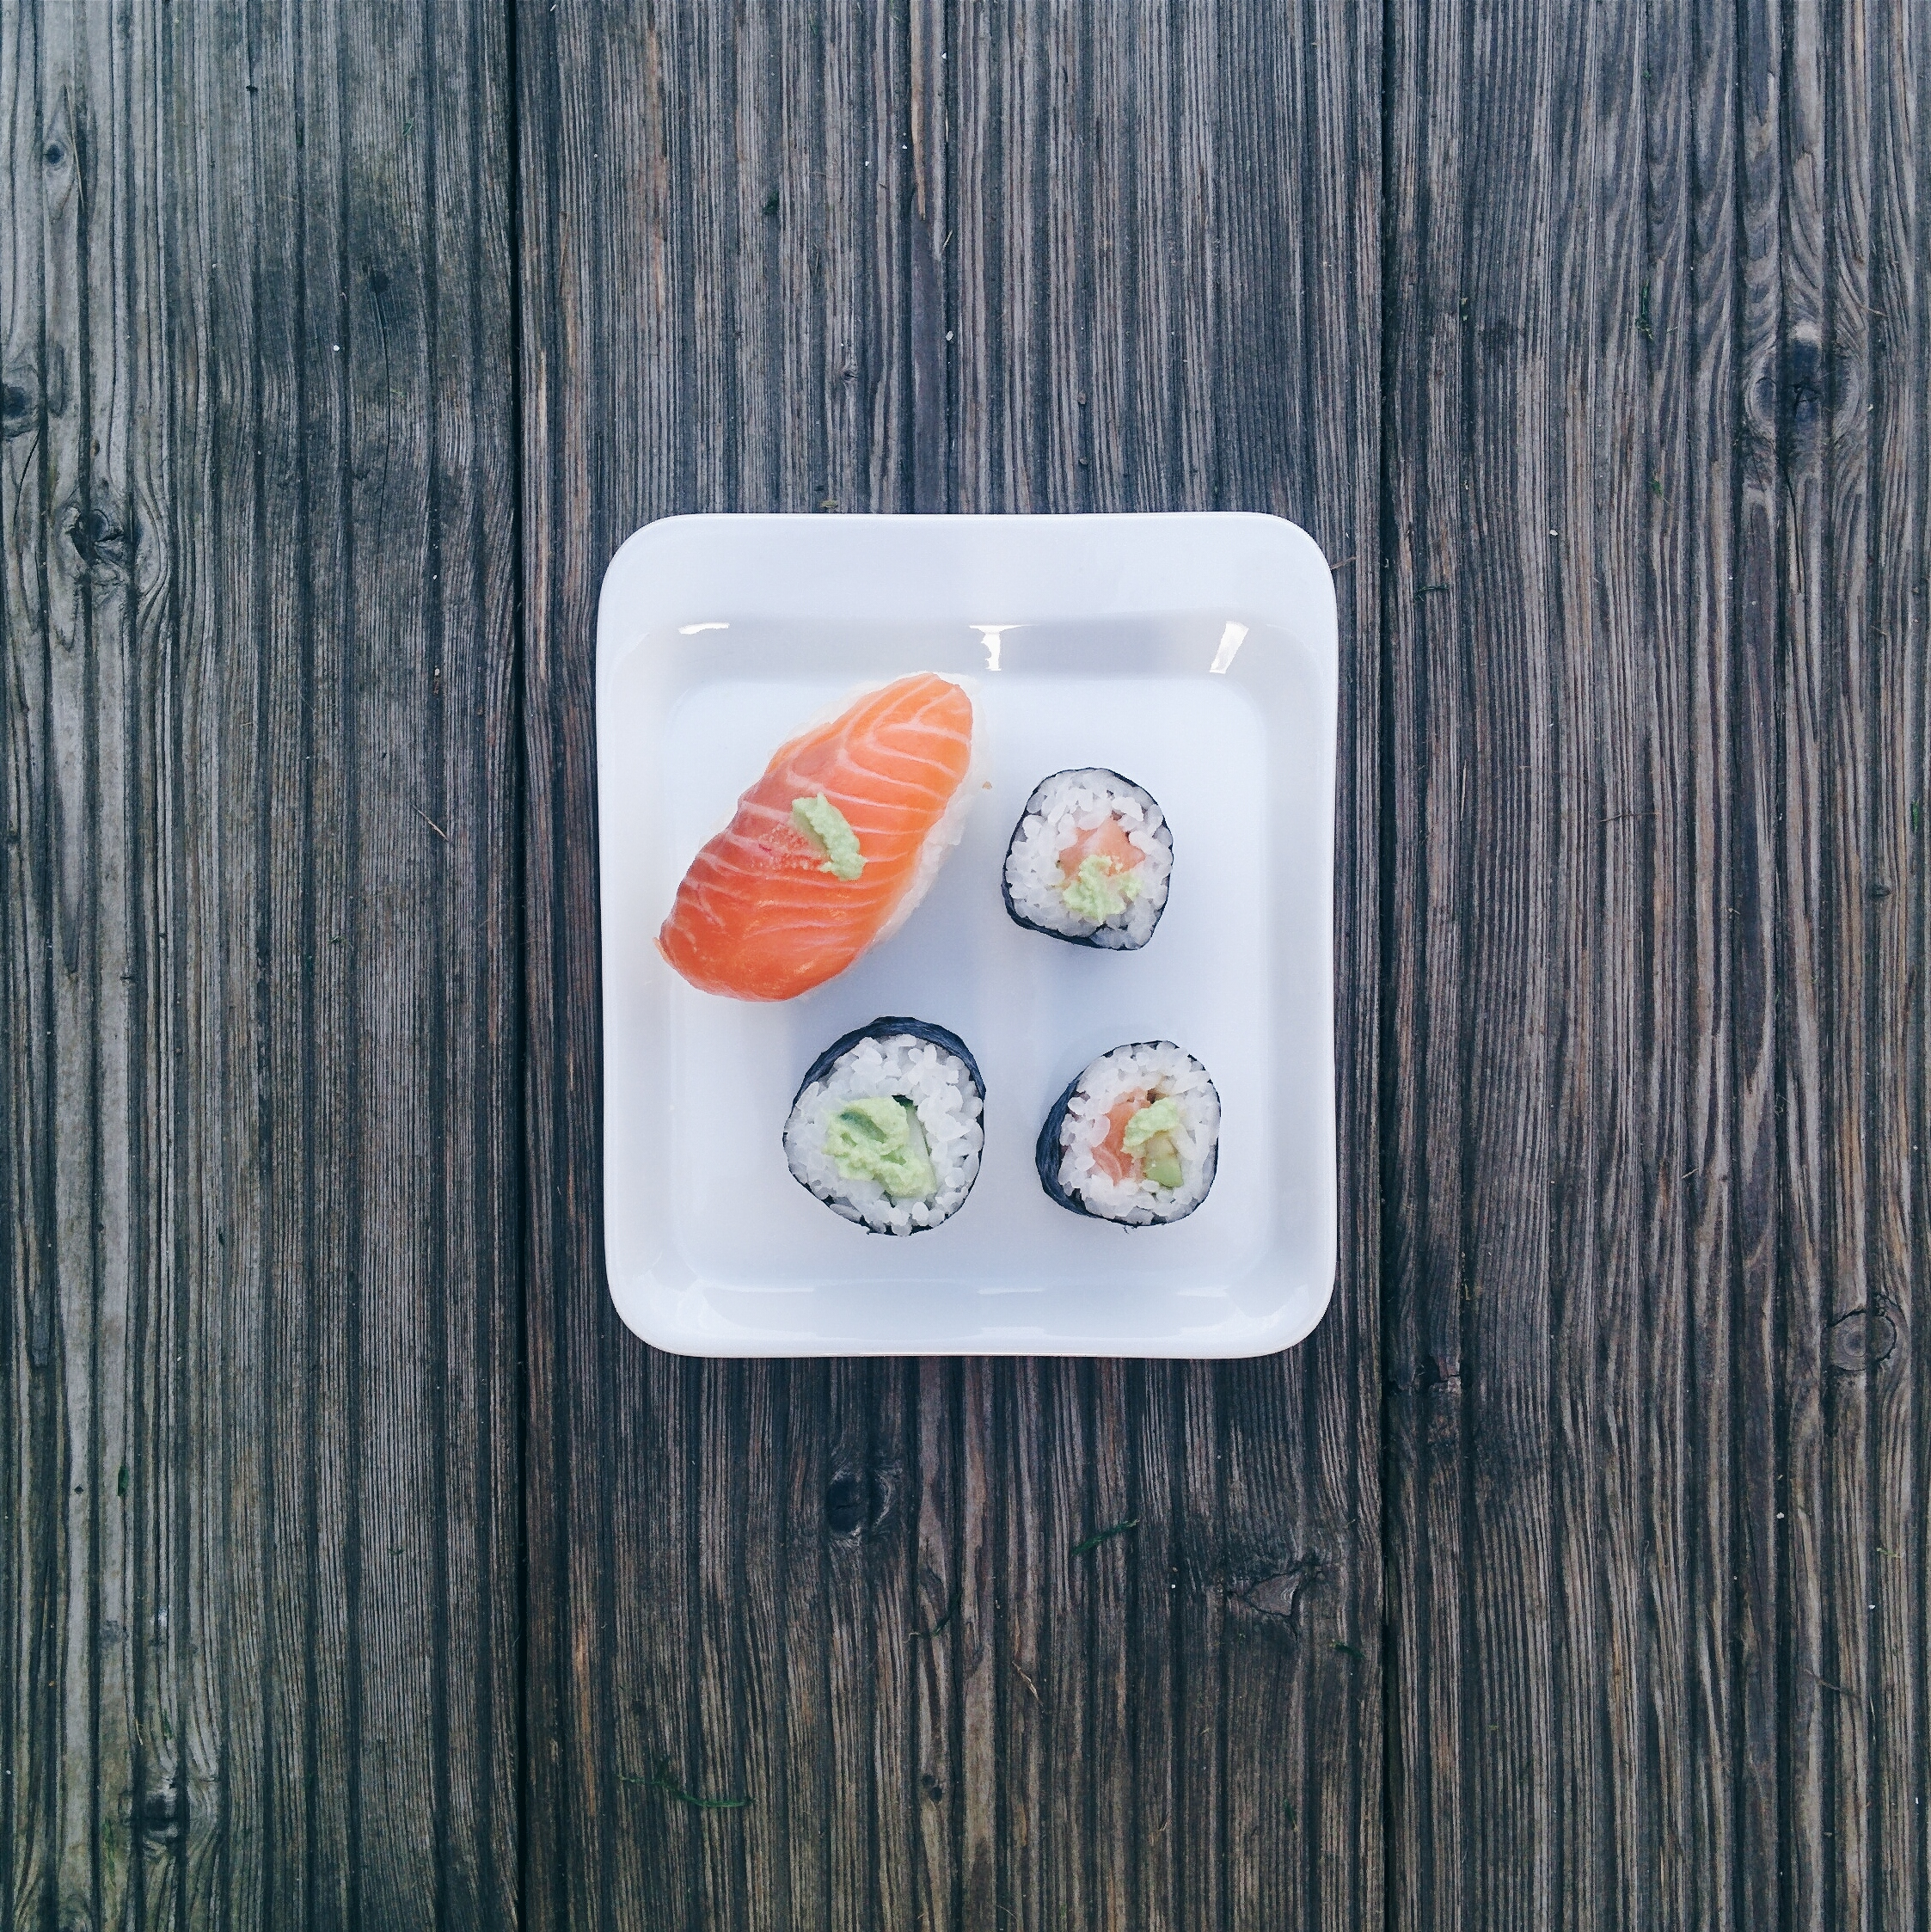 Minimal sushi on wooden background